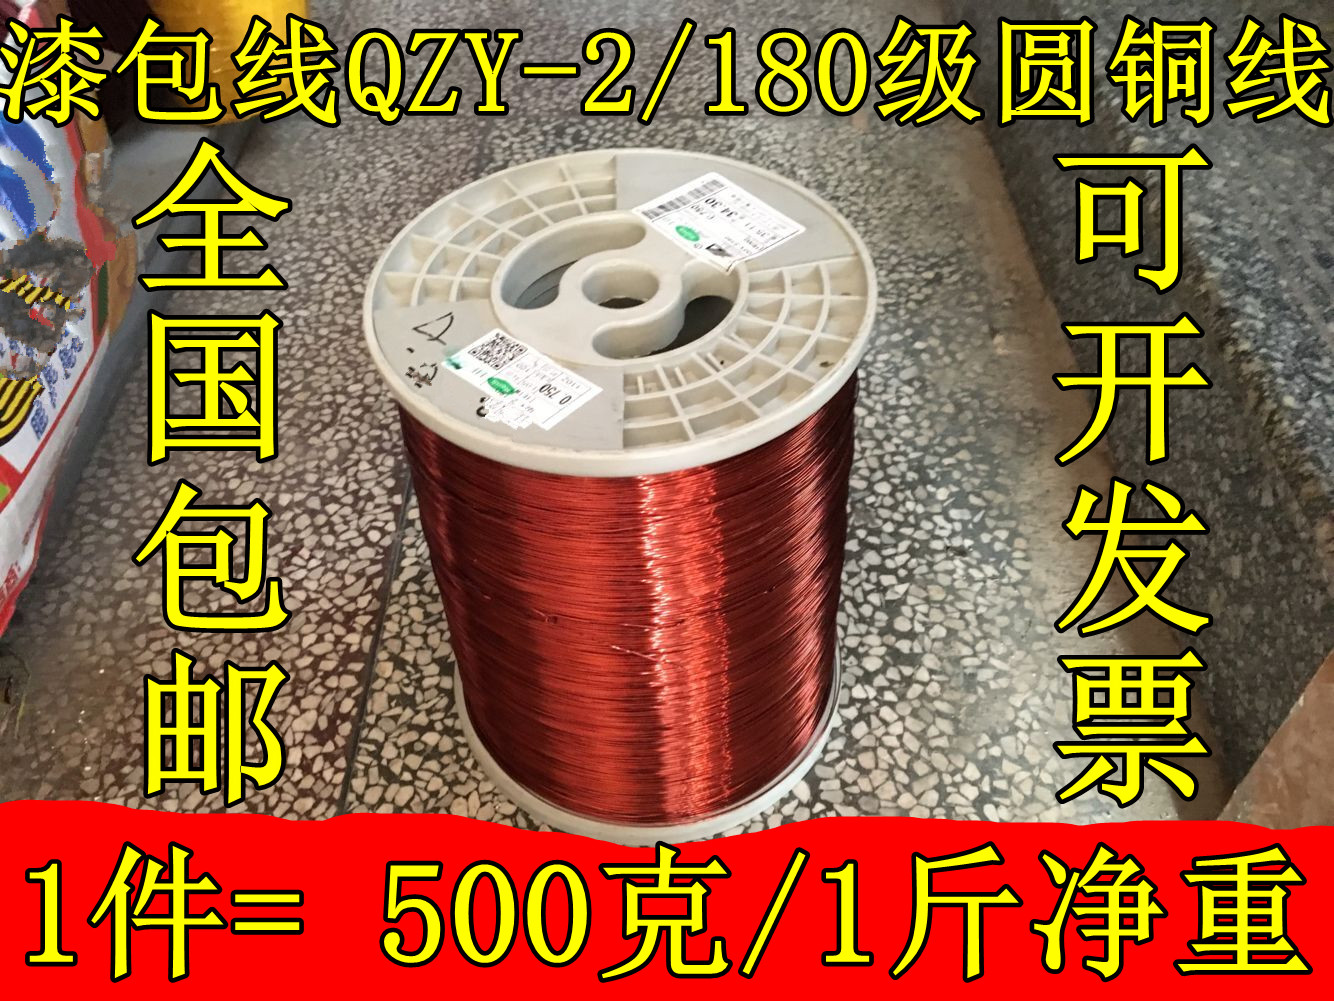 QZY-2 180 degree H-grade high temperature EIW electromagnetic motor transformer pure copper paint wire 1 catty 500g